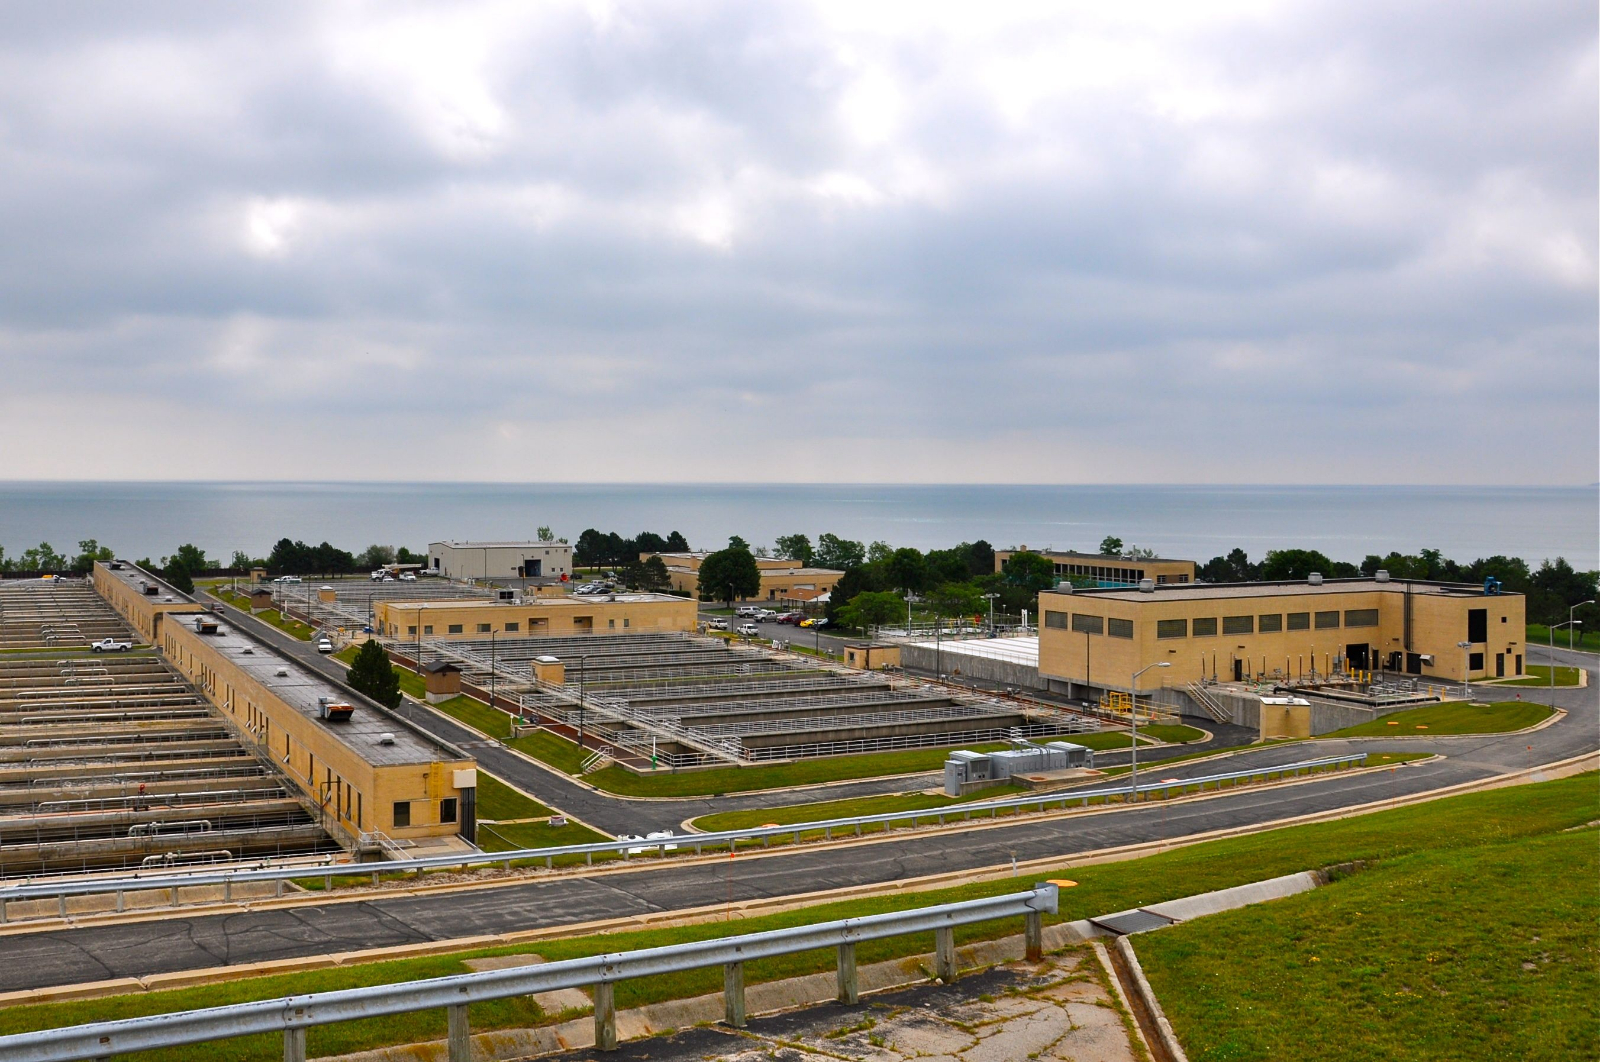 The Milwaukee Metropolitan Sewage District's South Shore Wastewater Treatment Plant. Photo by Susan Nusser.